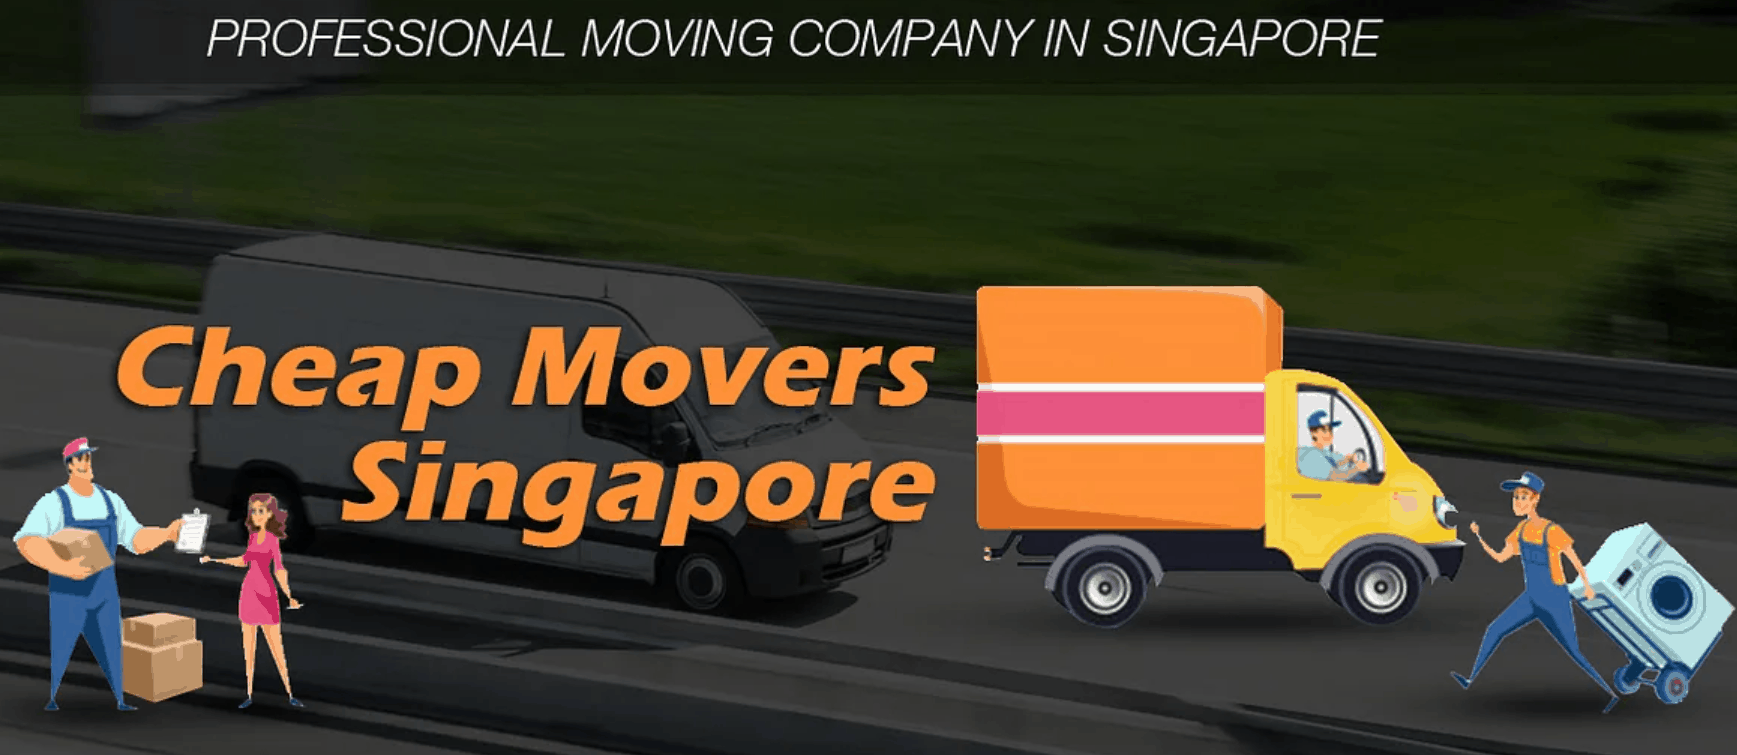 cheap Movers Singapore is Best Moving Companies in Singapore for Local Moves, Where to Find Affordable Movers in Singapore